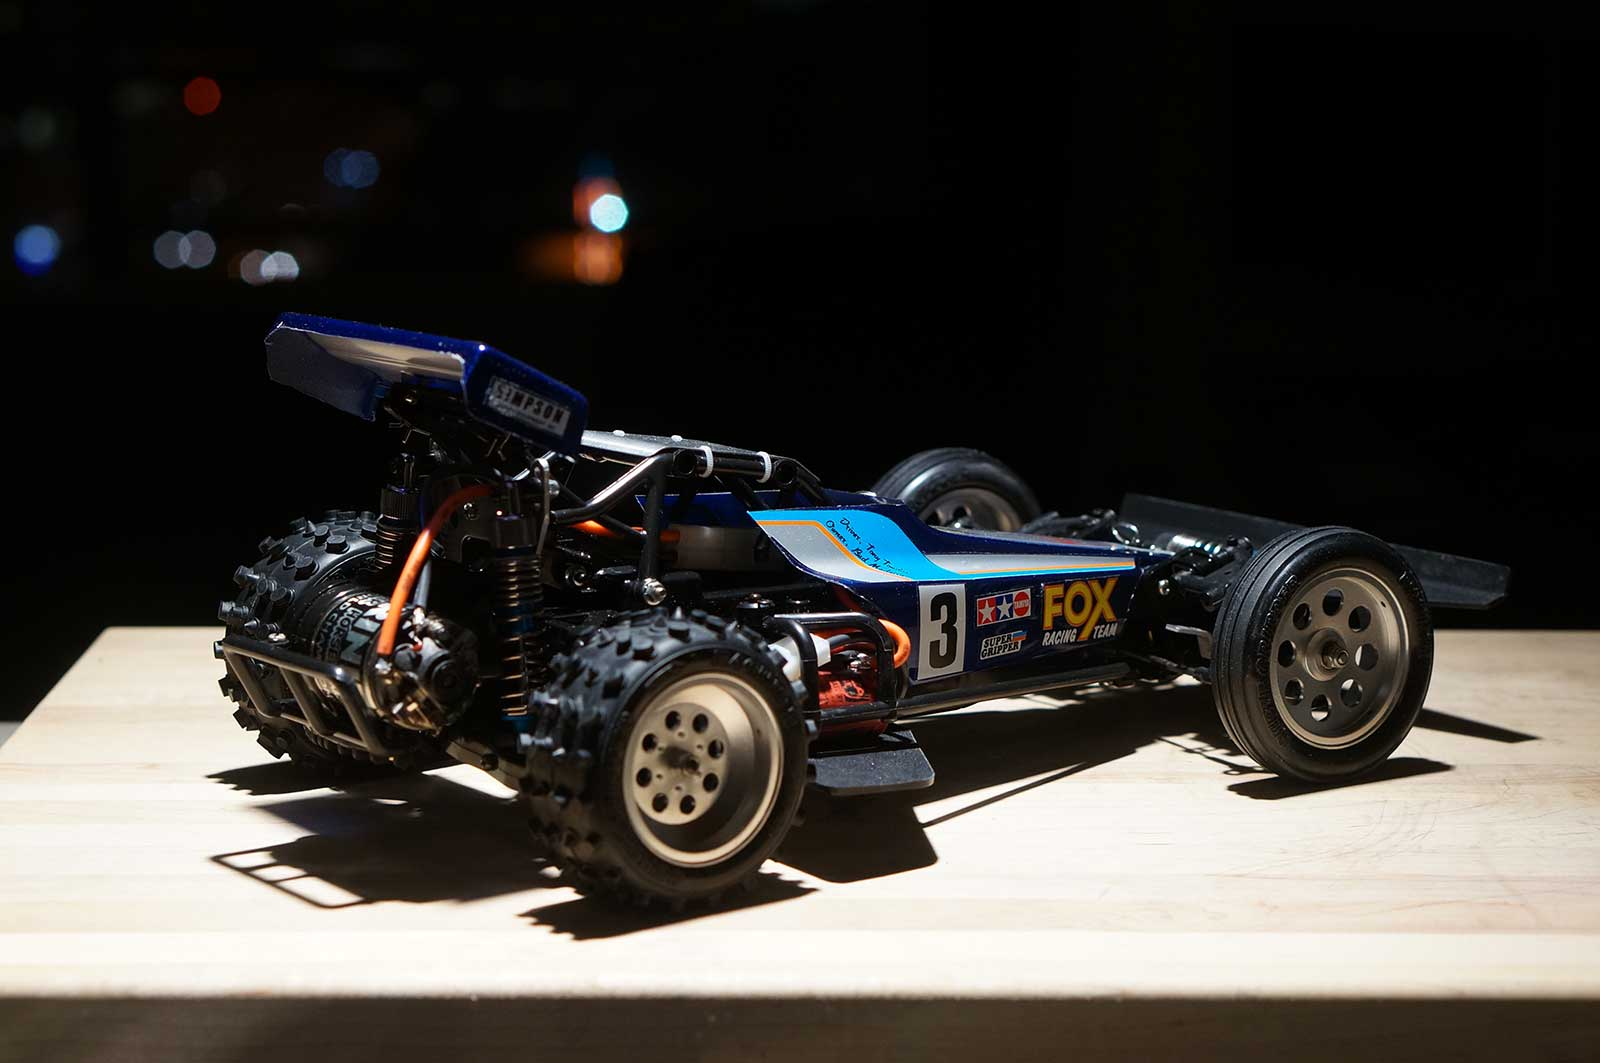 Modified Tamiya The Fox